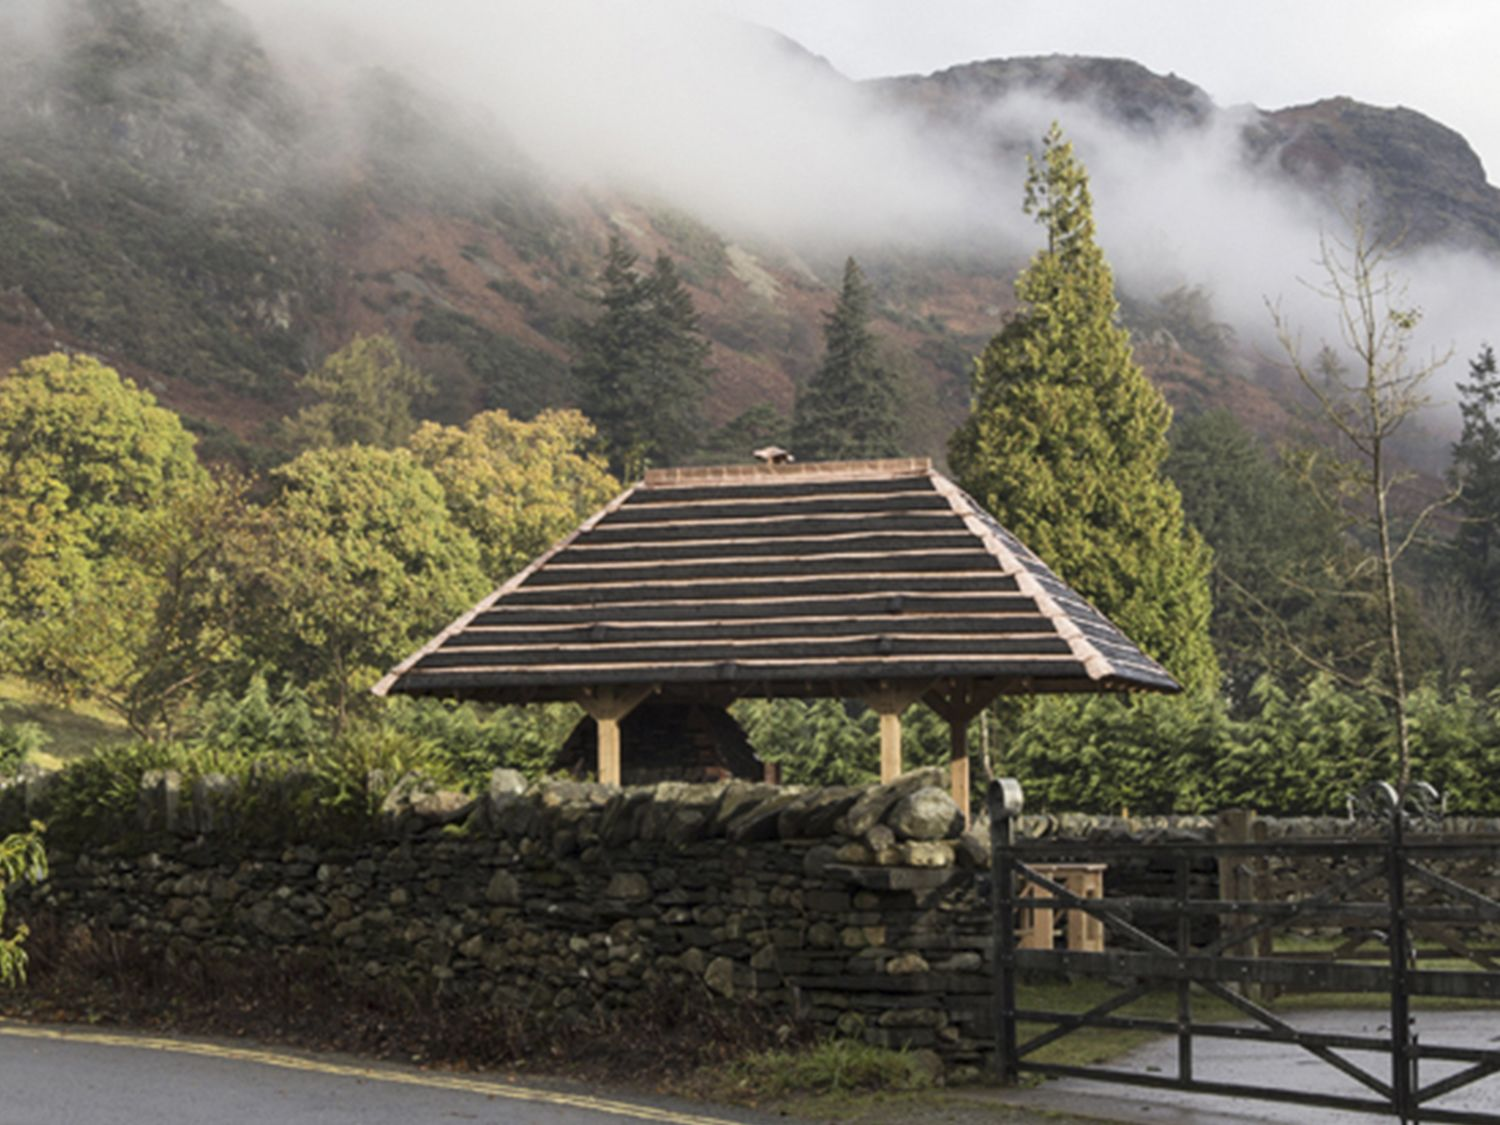 Photograph of a stone wall with a small roofed structure behind it and a forest in the background